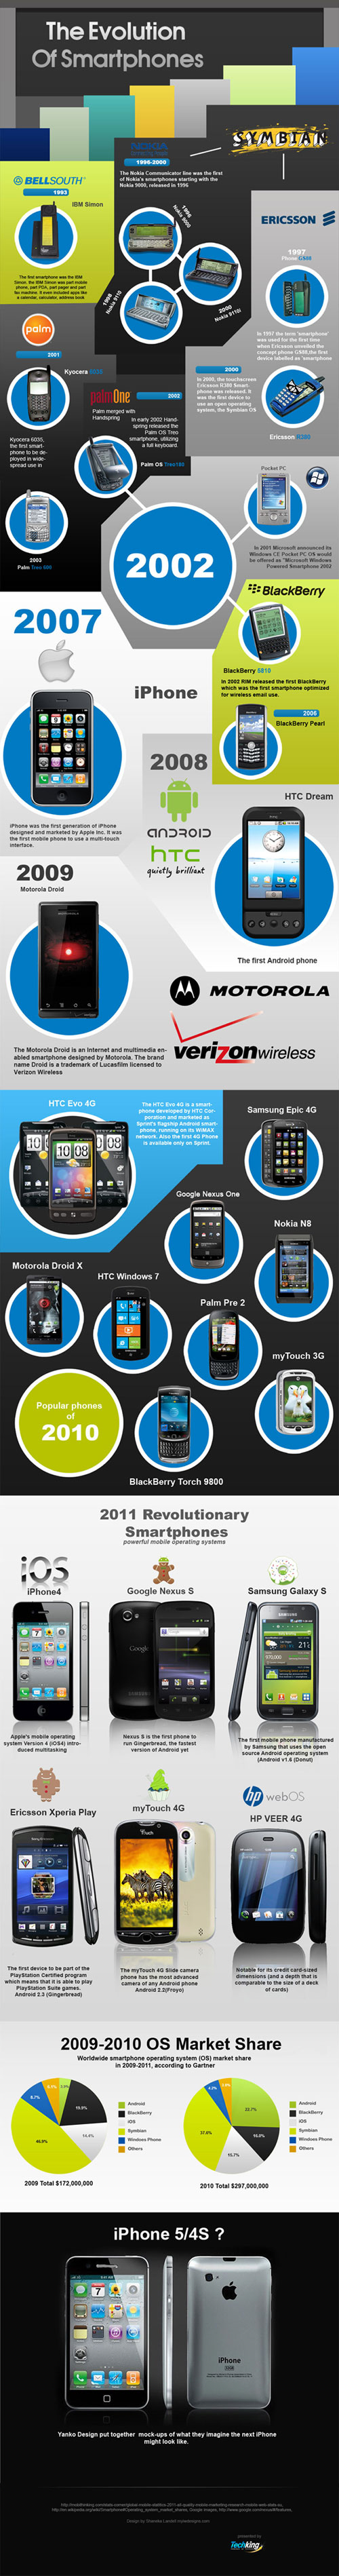 Evolution des Mobiles : du IBM Simon à l'Iphone